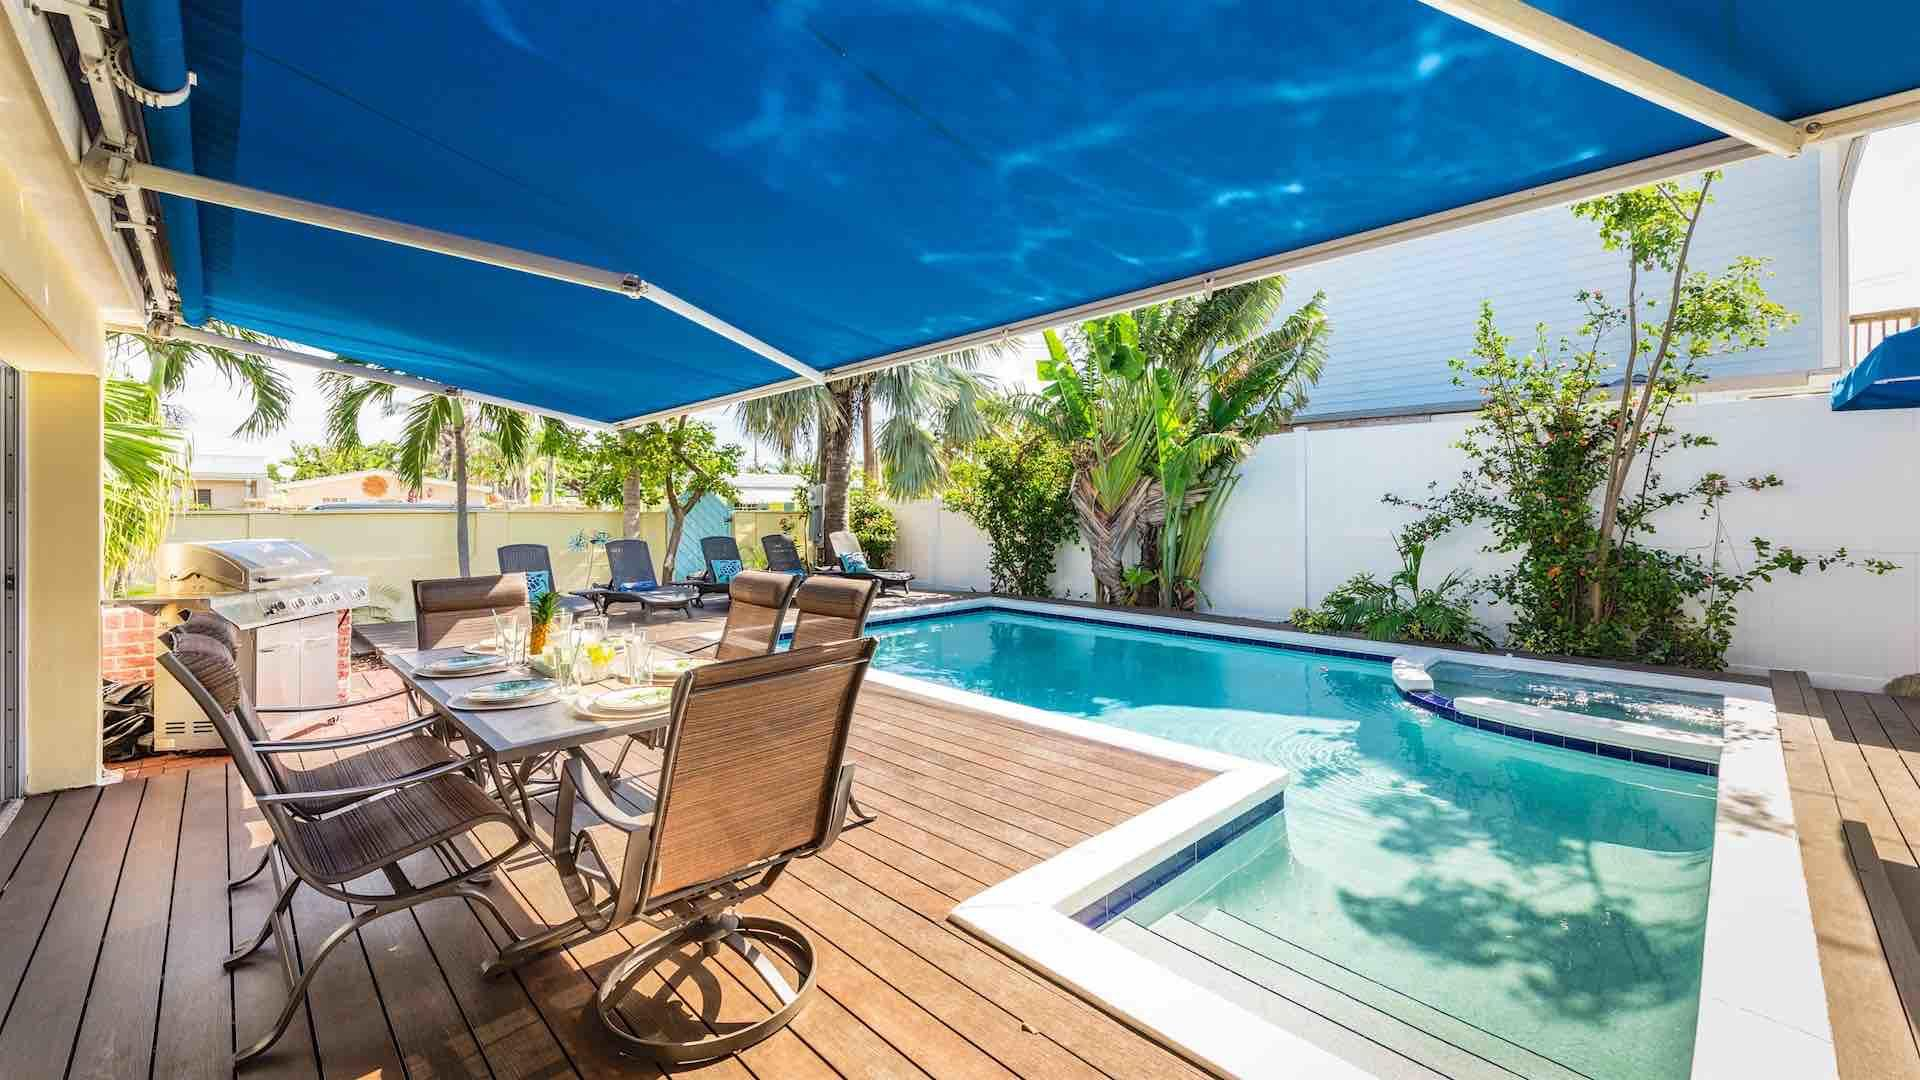 There is a shaded outdoor dining set for enjoying a poolside meal...